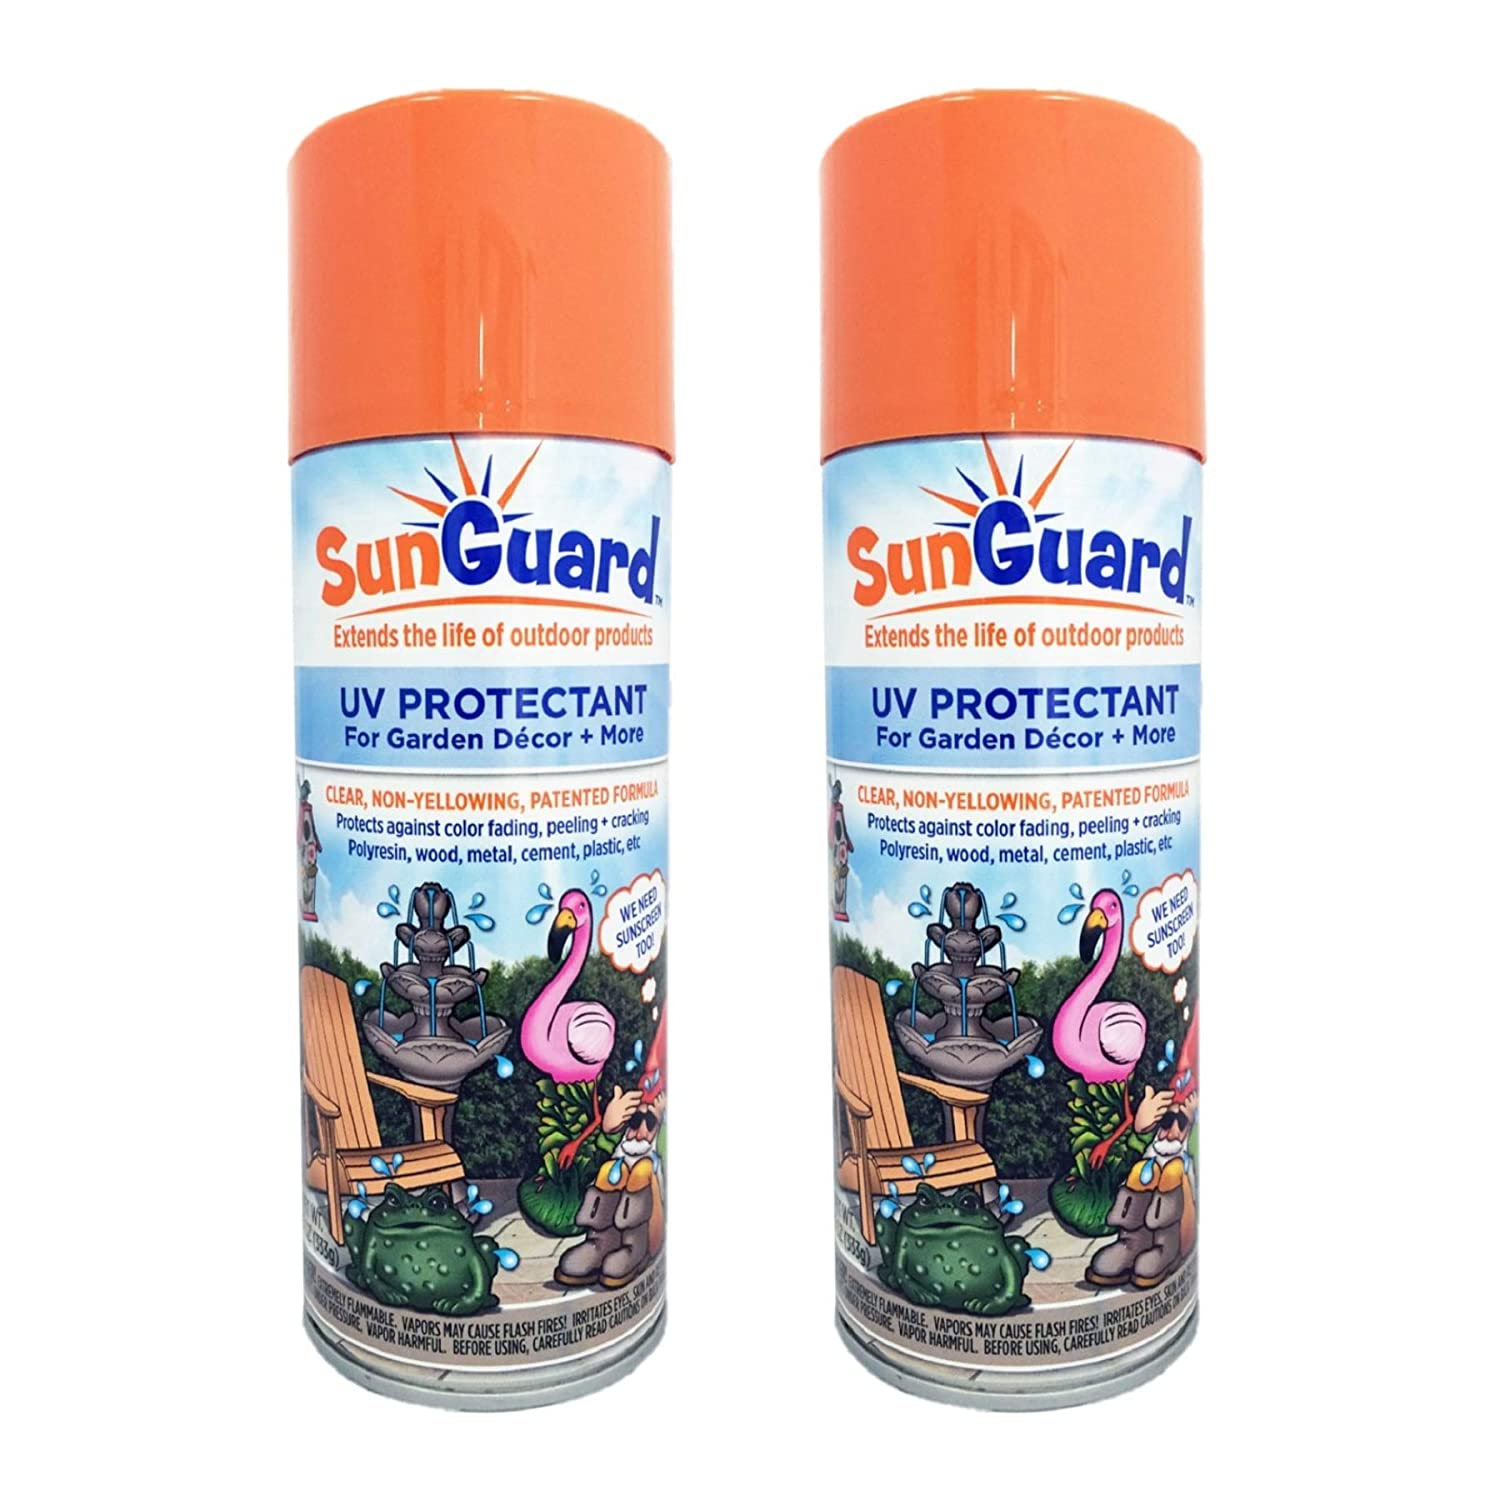 SUNGUARD UV Protectant Spray for Outdoor Decor, Furniture & More (2-Pack) Prevents Fading Peeling and Cracking